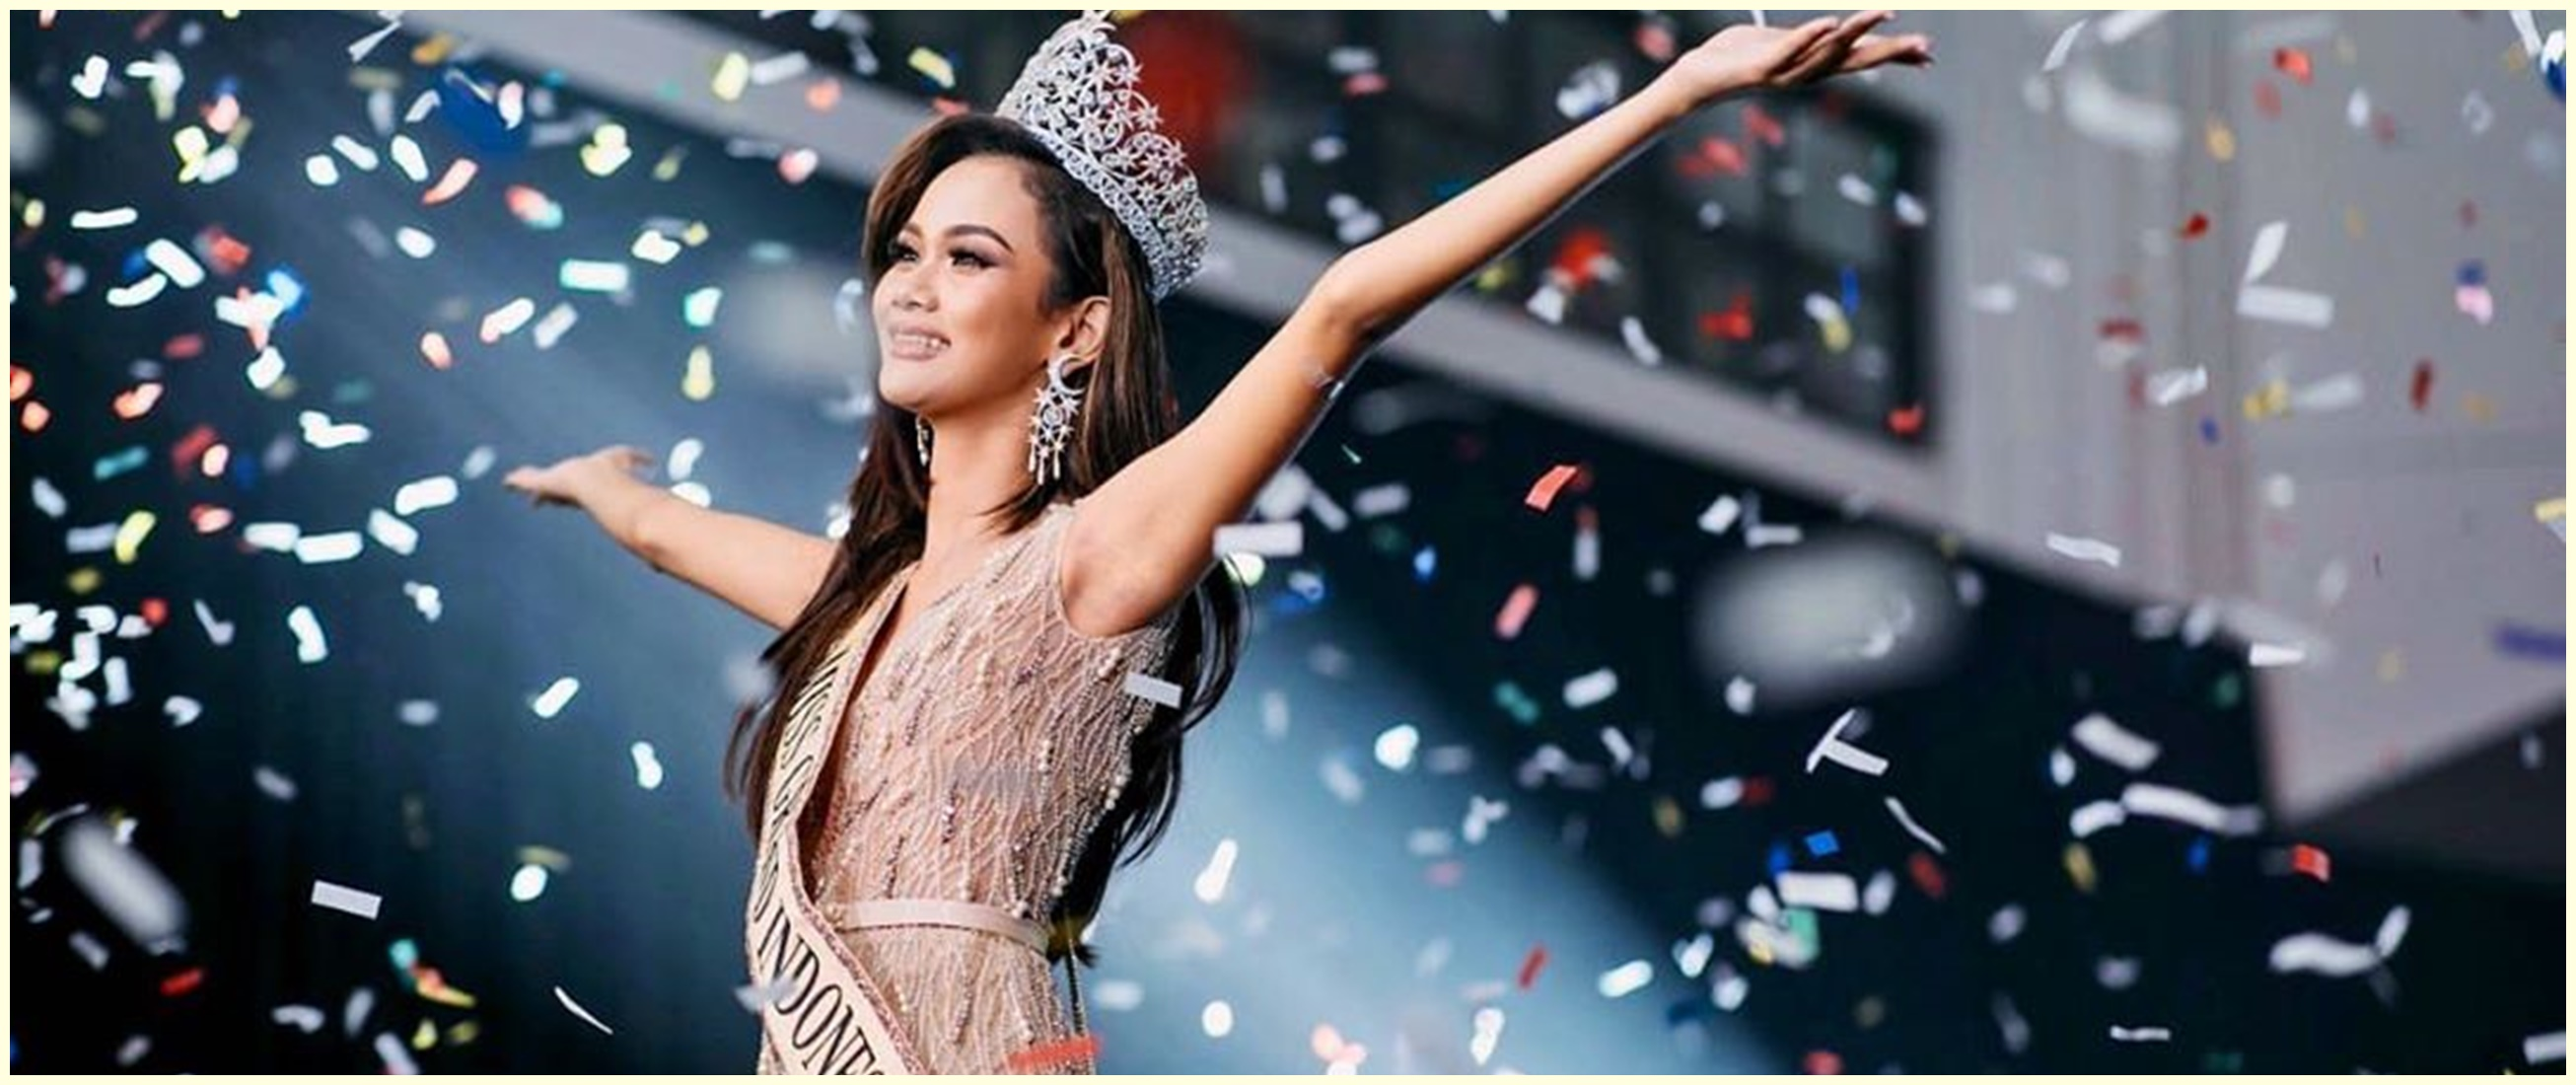 10 Potret Aura Kharisma Miss Grand Indonesia 2020, memesona